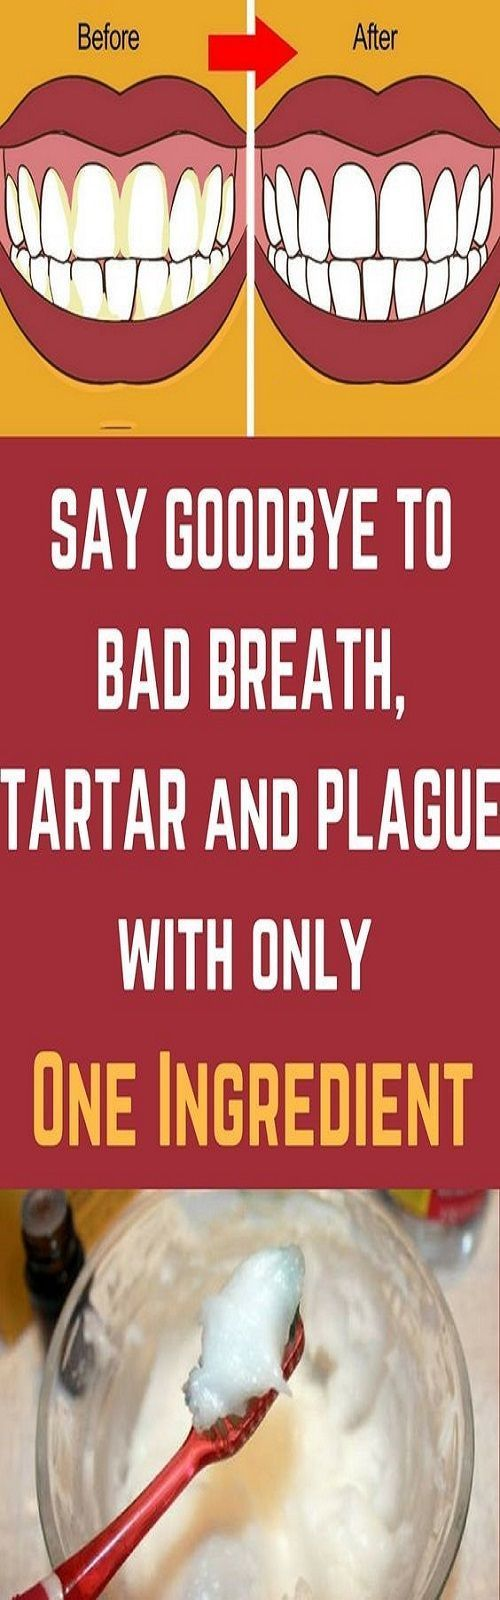 how to get rid of plaque and tartar